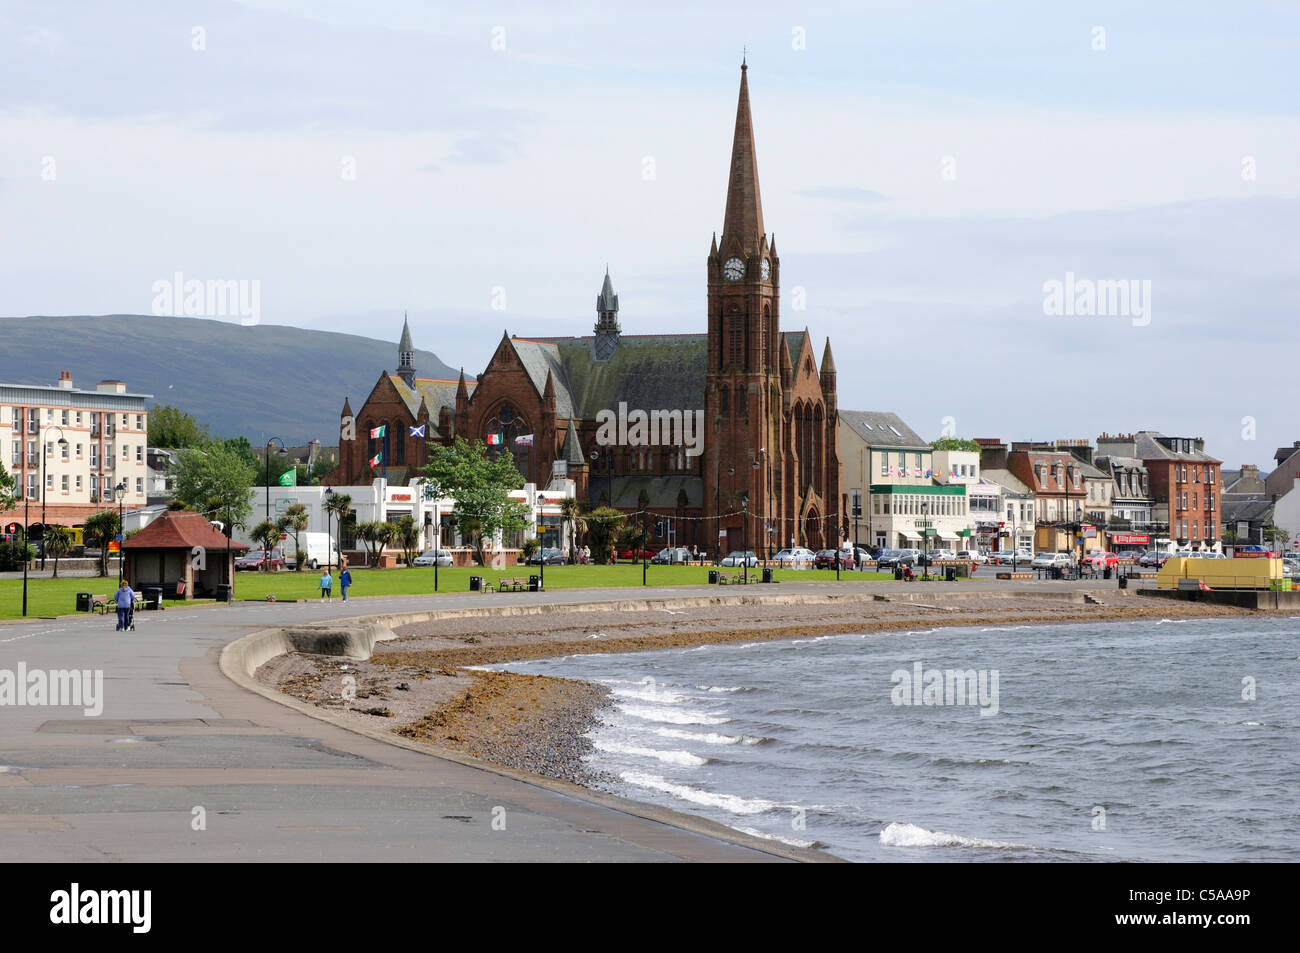 The town of Largs, Scotland - Stock Image